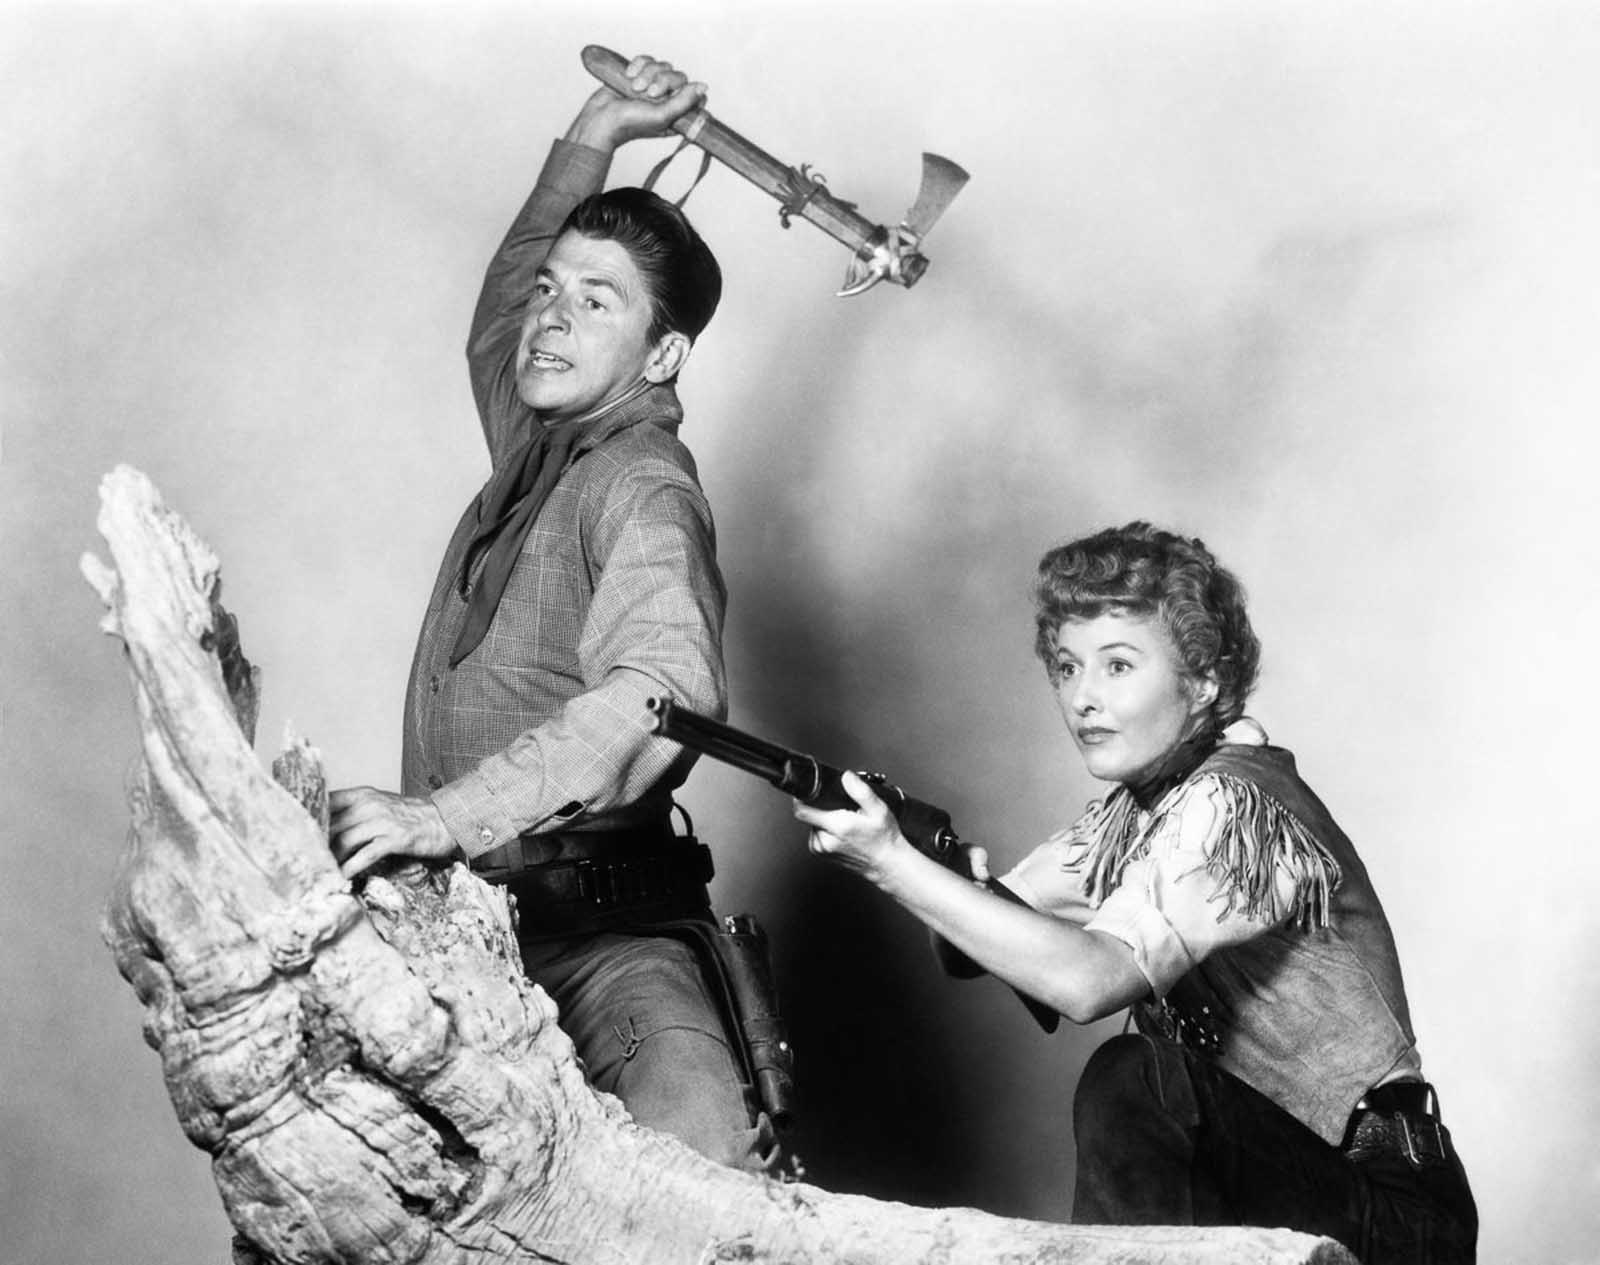 Ronald Reagan and Barbara Stanwyck in a publicity still for Cattle Queen of Montana.